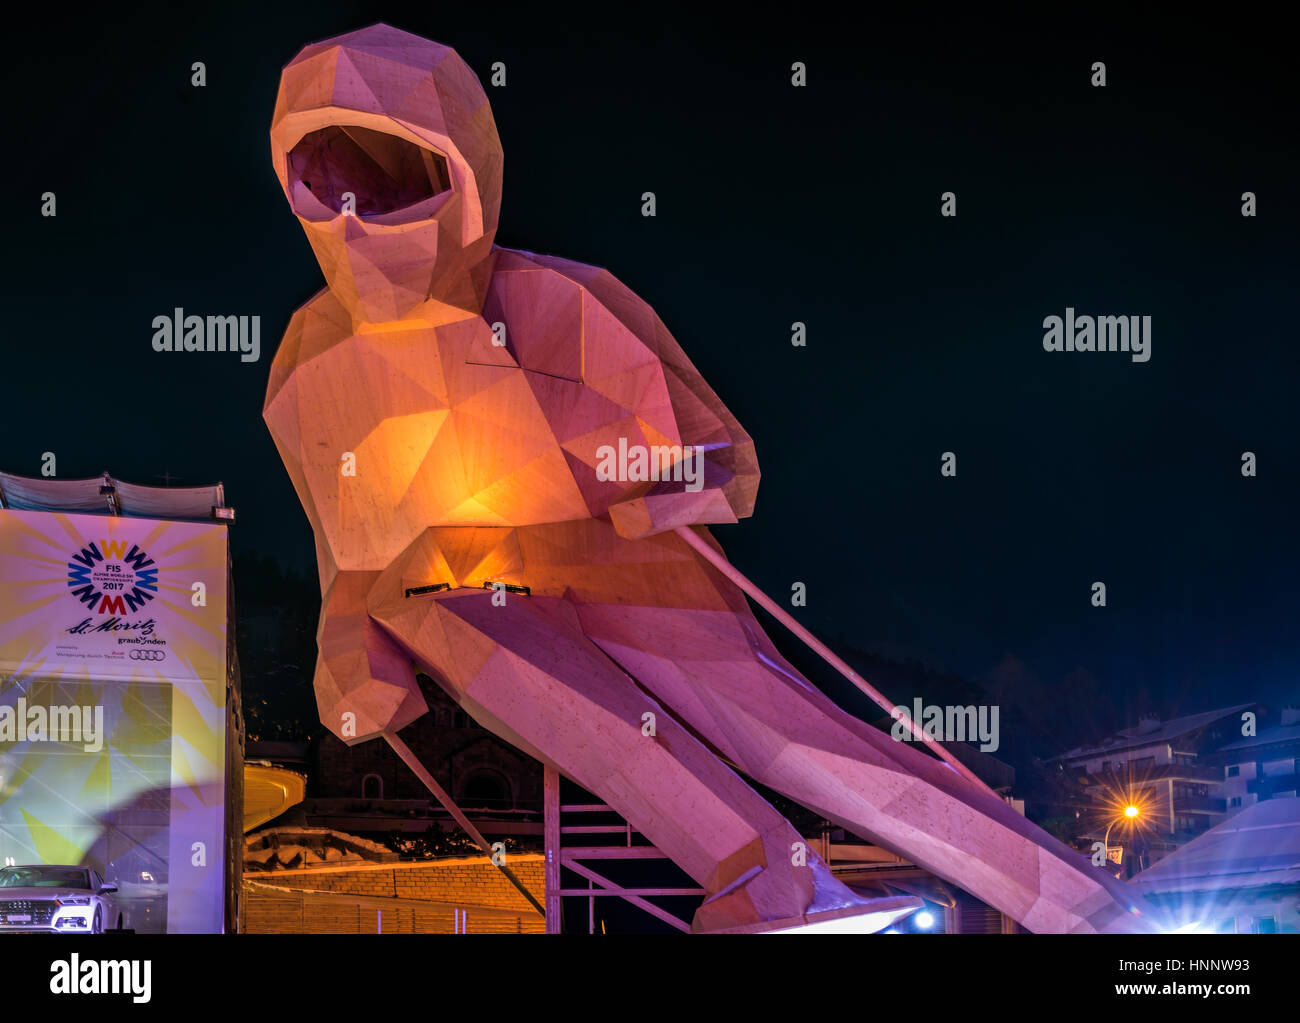 Giant wooden skier named Edy, on display during the 2017 FIS Alpine World Championships in St.Moritz, Switzerland - Stock Image